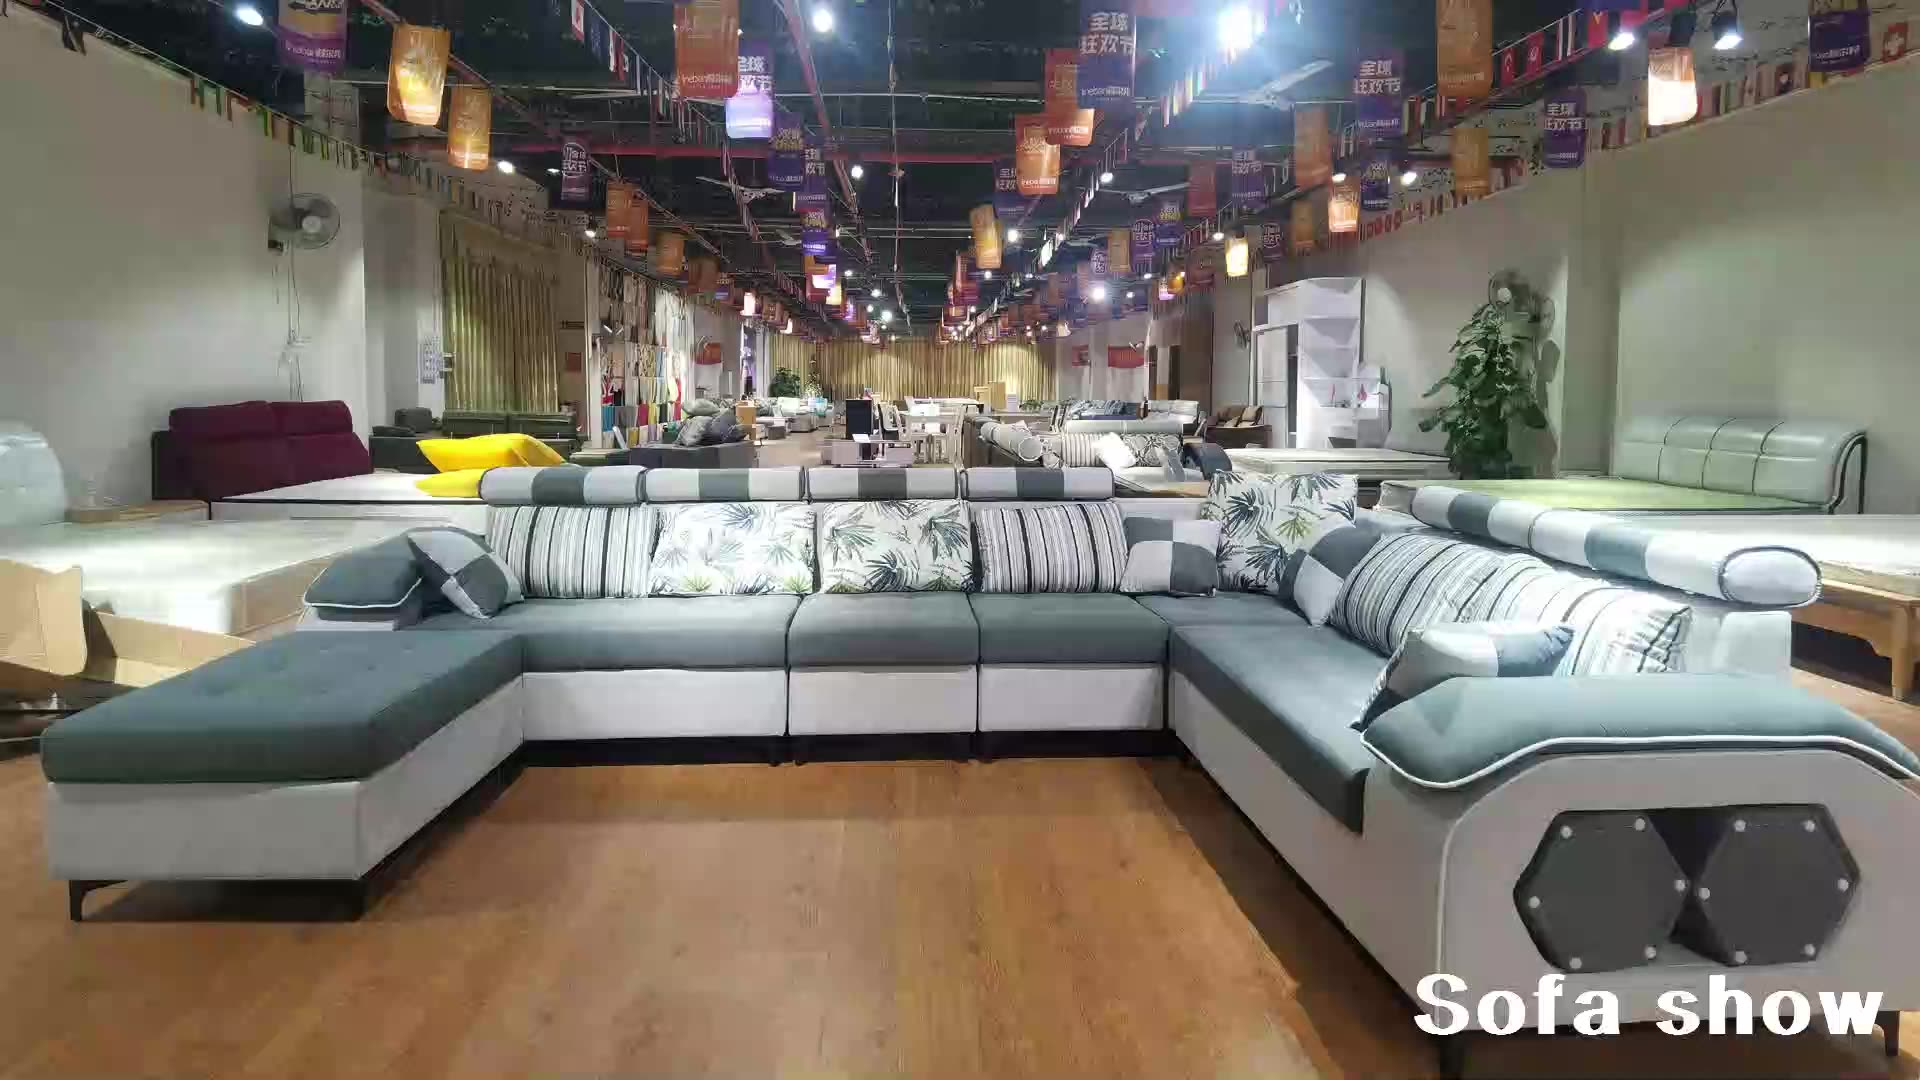 Furniture Factory Provided Living Room Sofas/Fabric Sofa Bed Royal Sofa set 7 seater living room Furniture designs